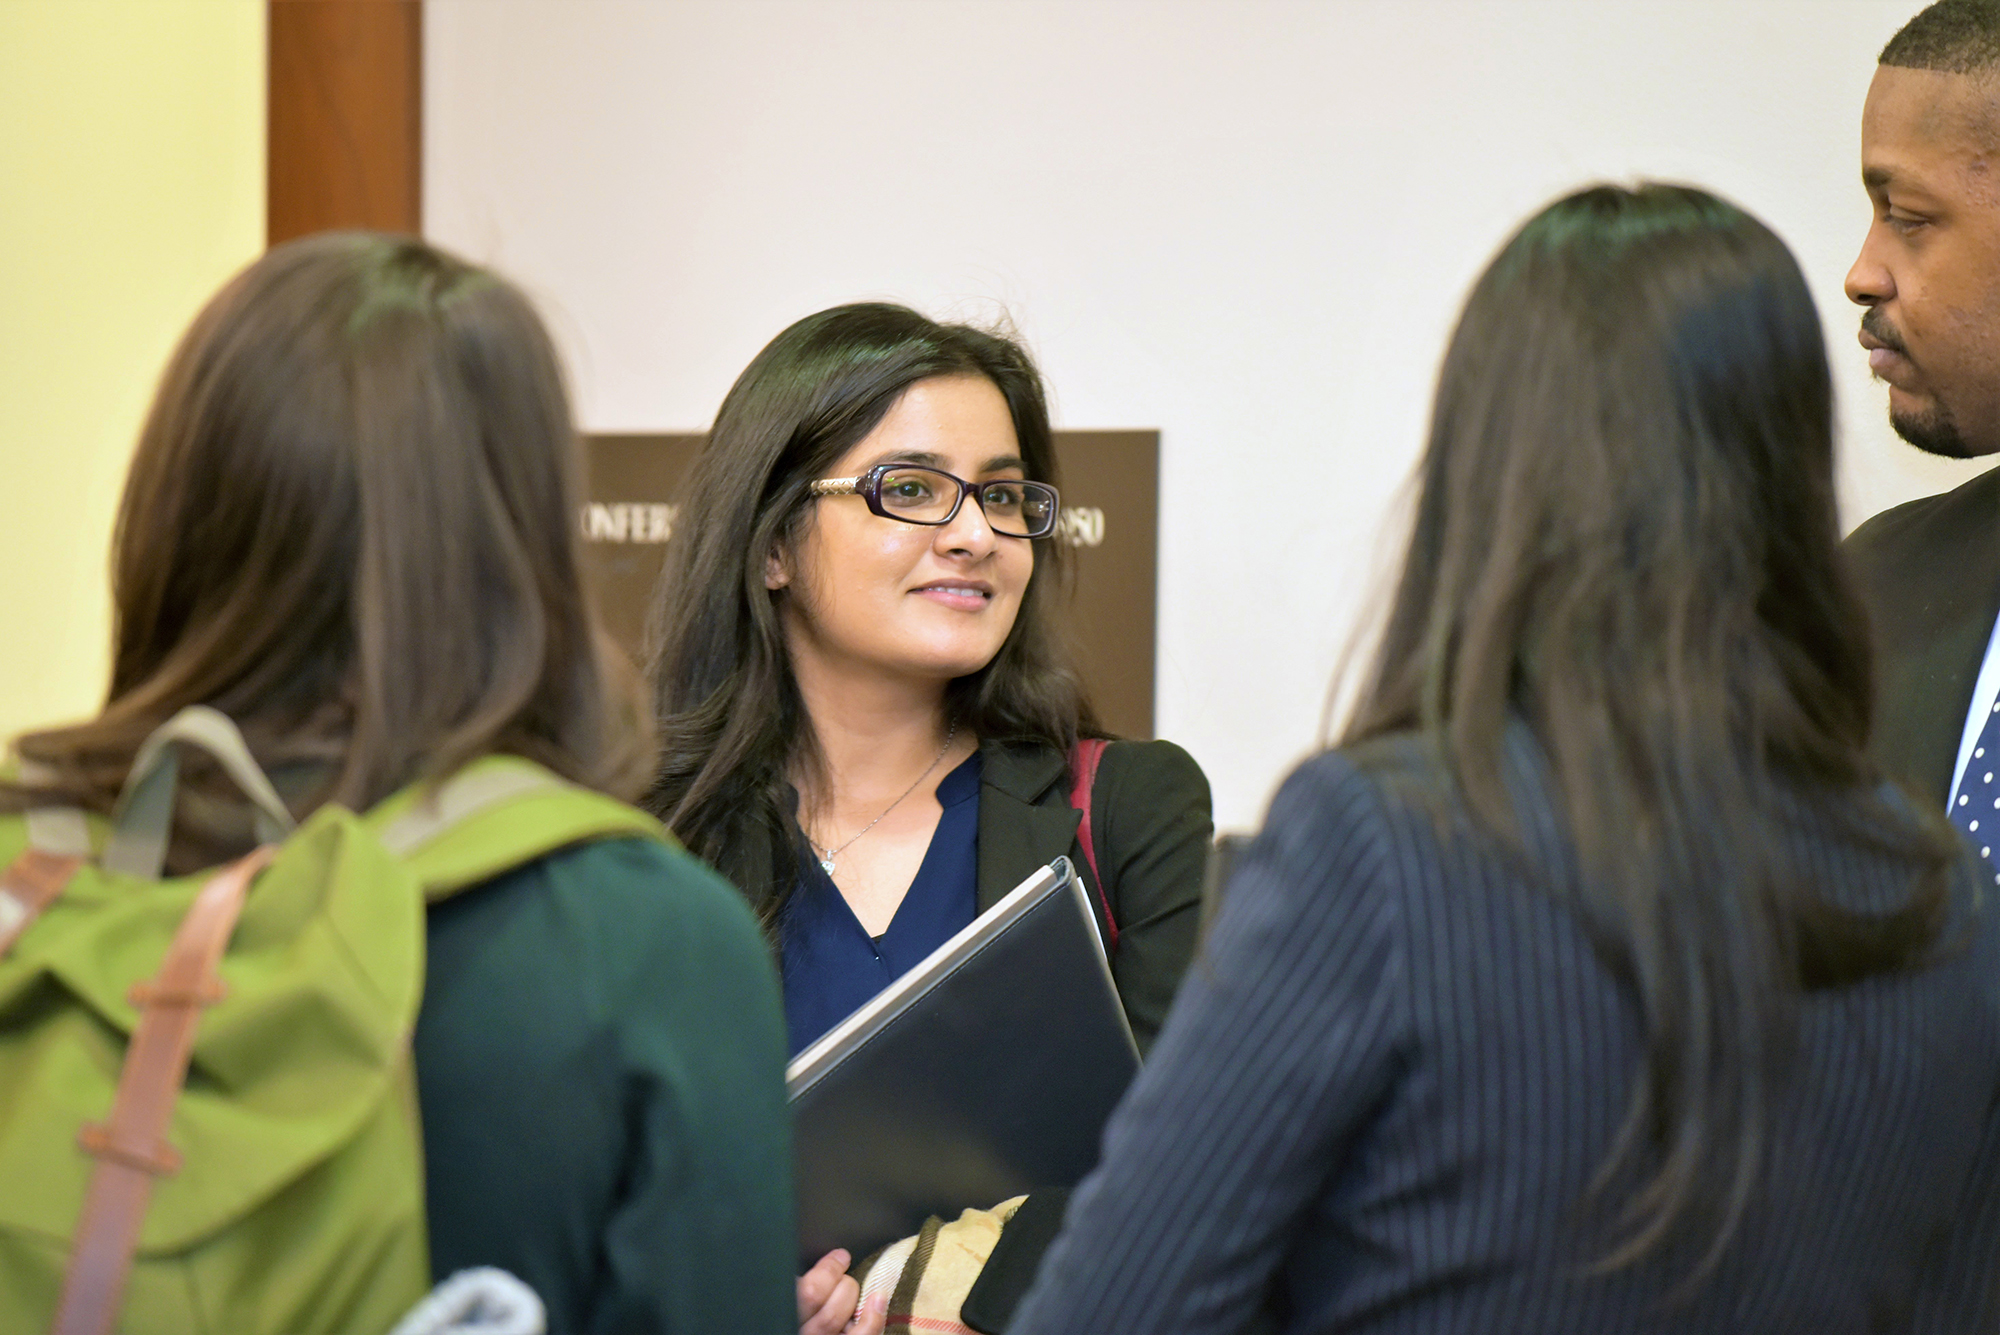 Student at Kellstadt Career Management Center networking event